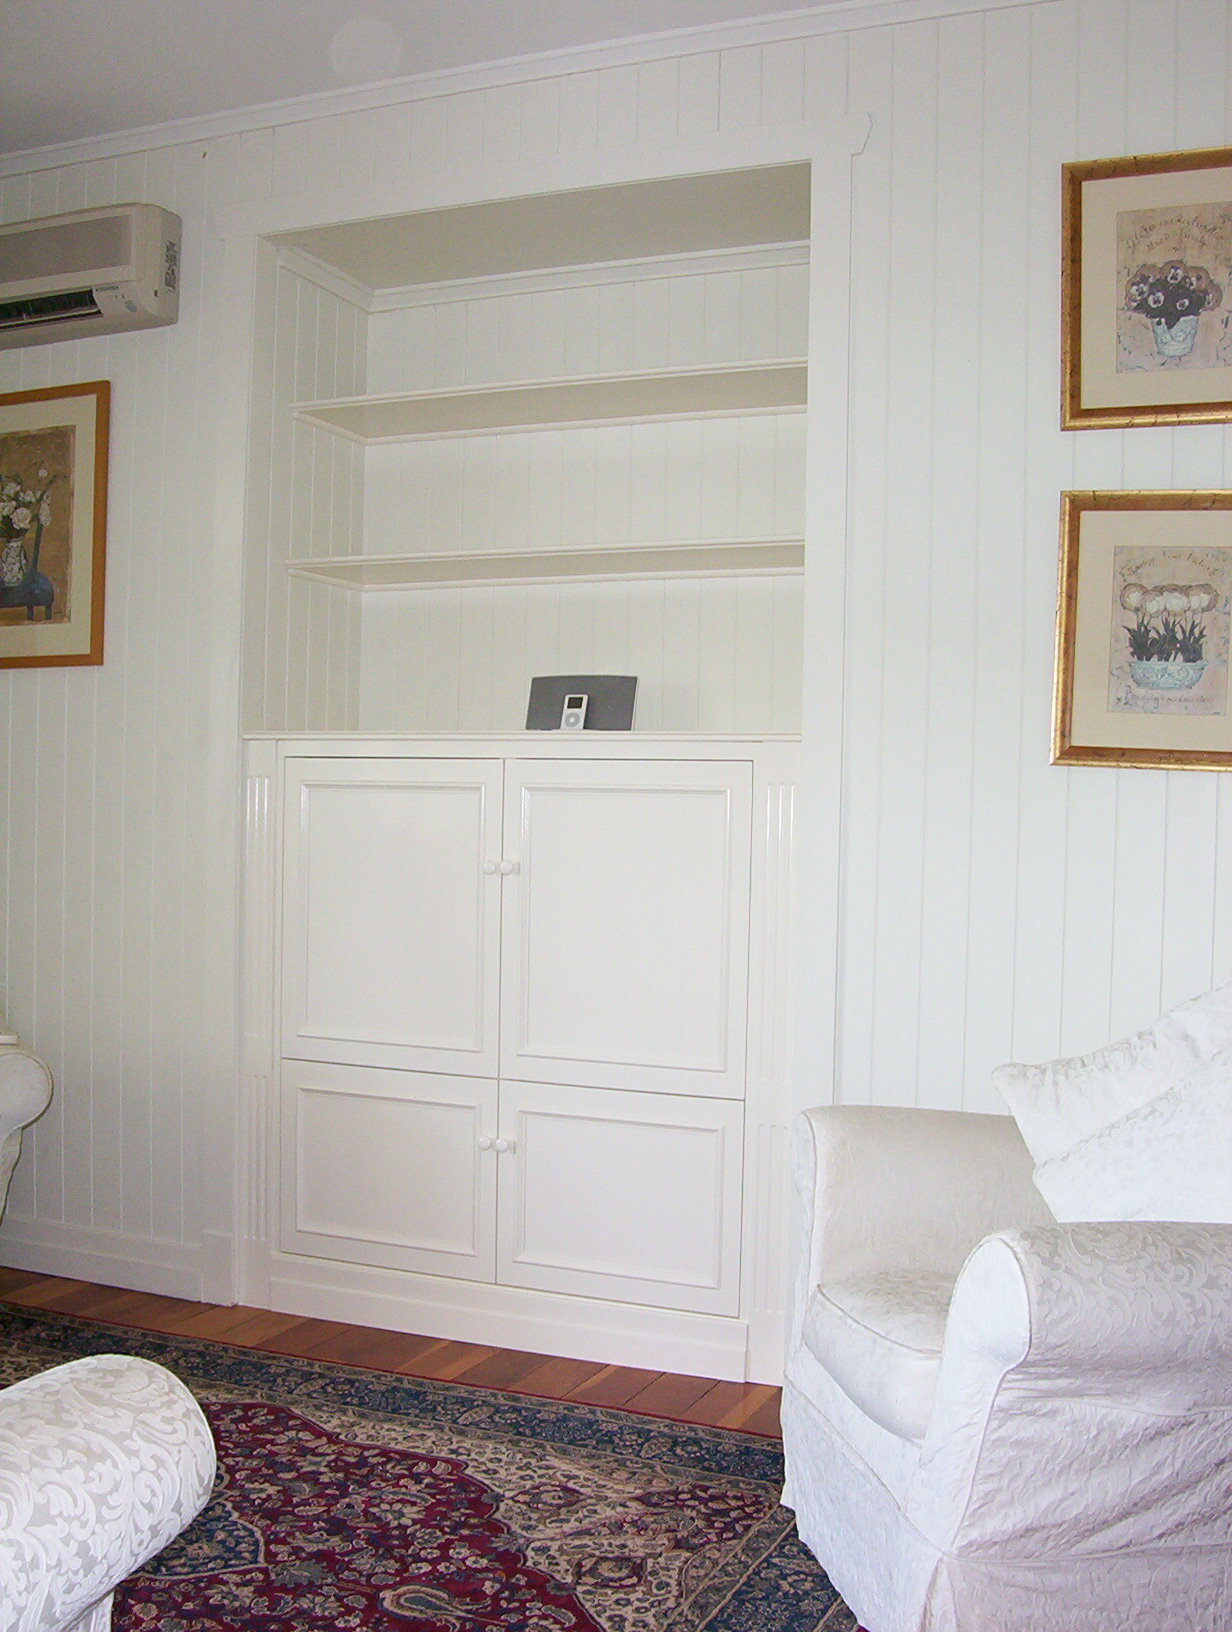 A perfect blank canvas to add art pieces, treasured books, special photos and mementos